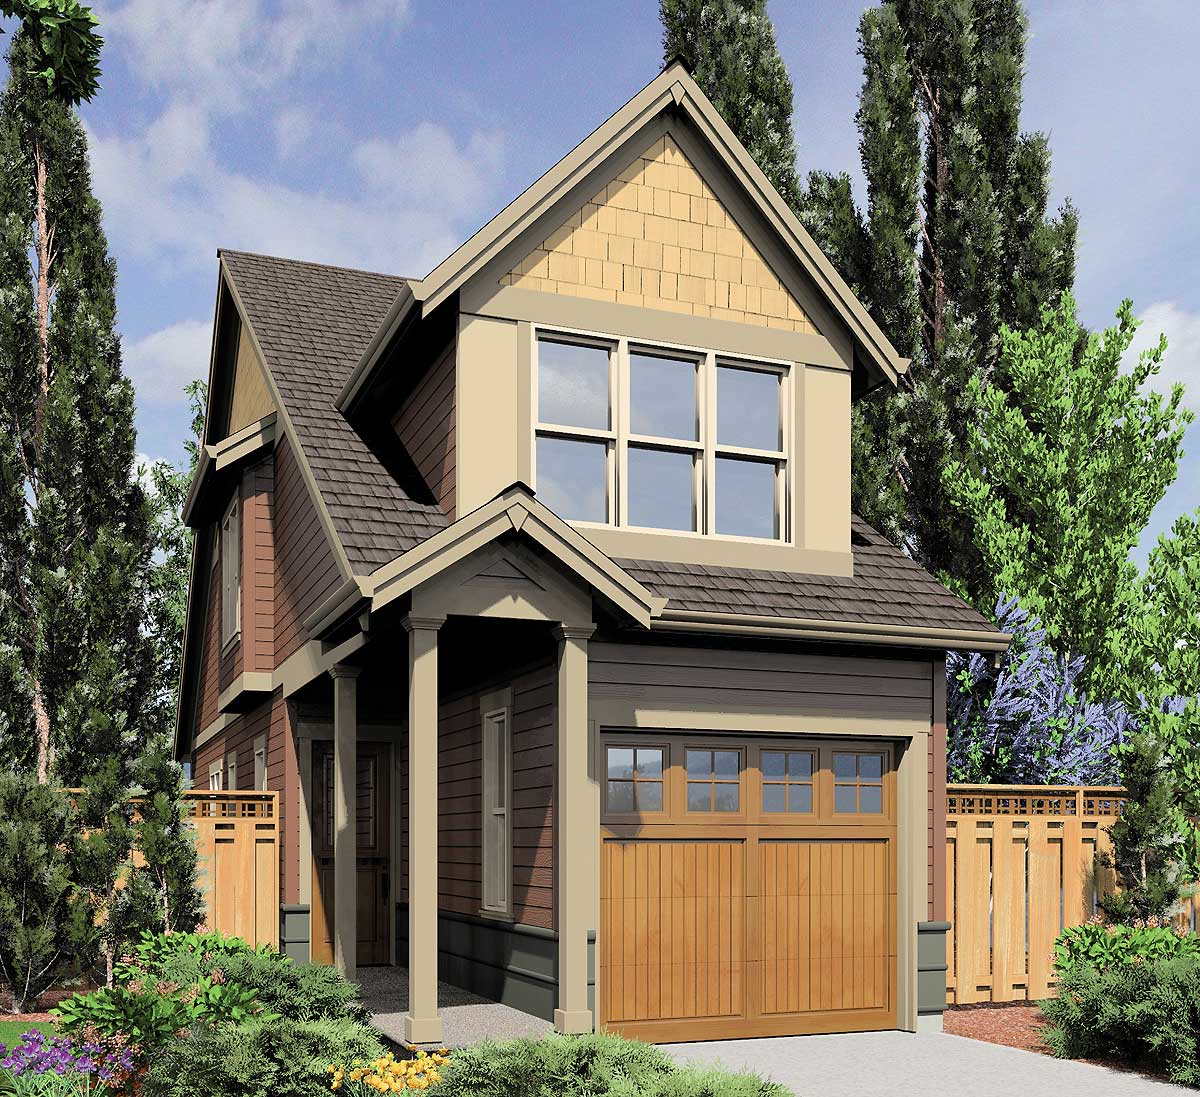 Sliver Of A Home Plan 69574am 2nd Floor Master Suite